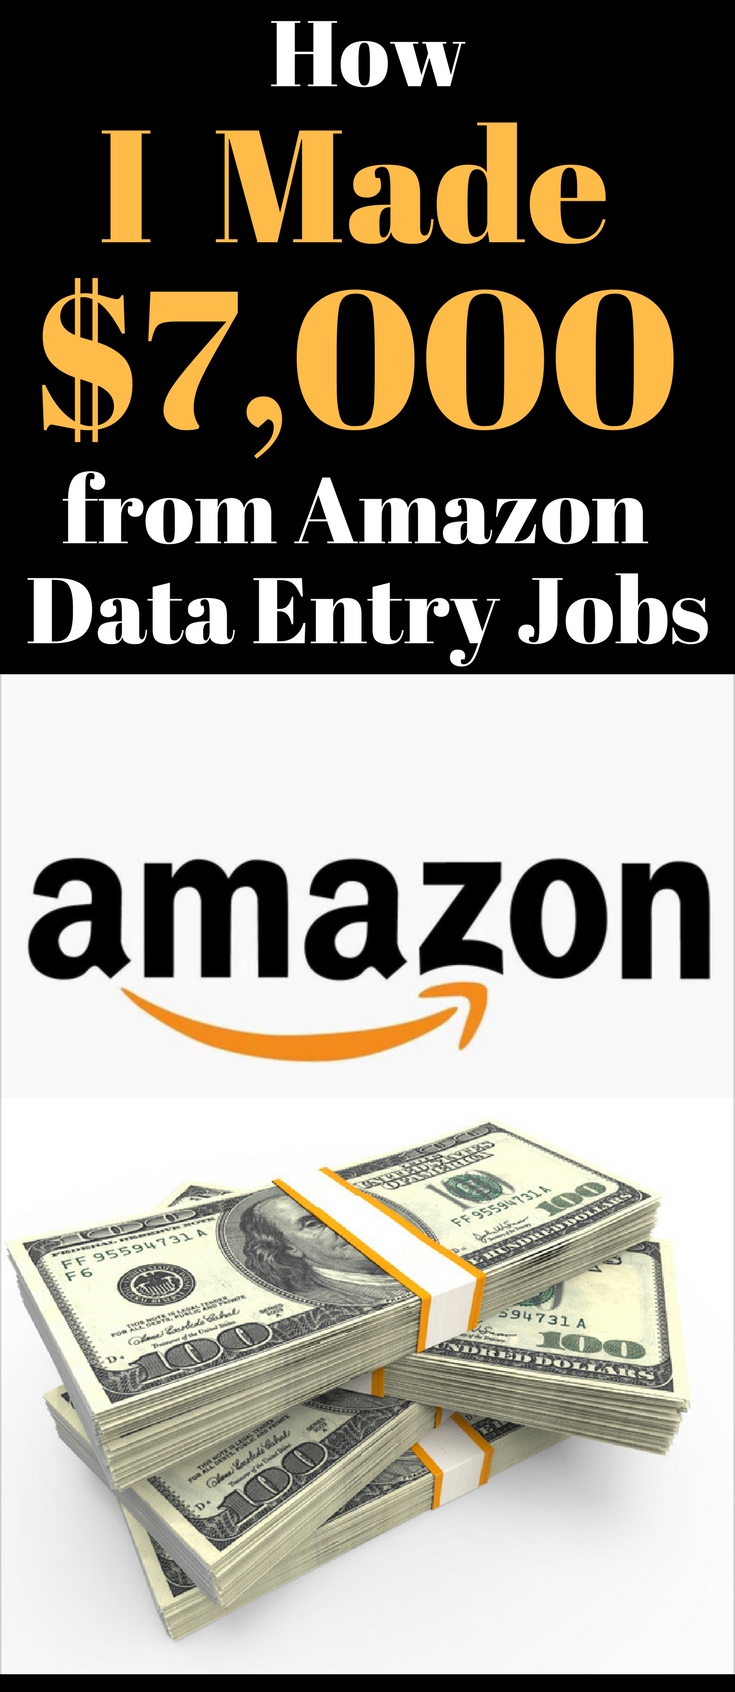 How I Made $7,000 from Amazon Data Entry Jobs from Home | Data entry ...